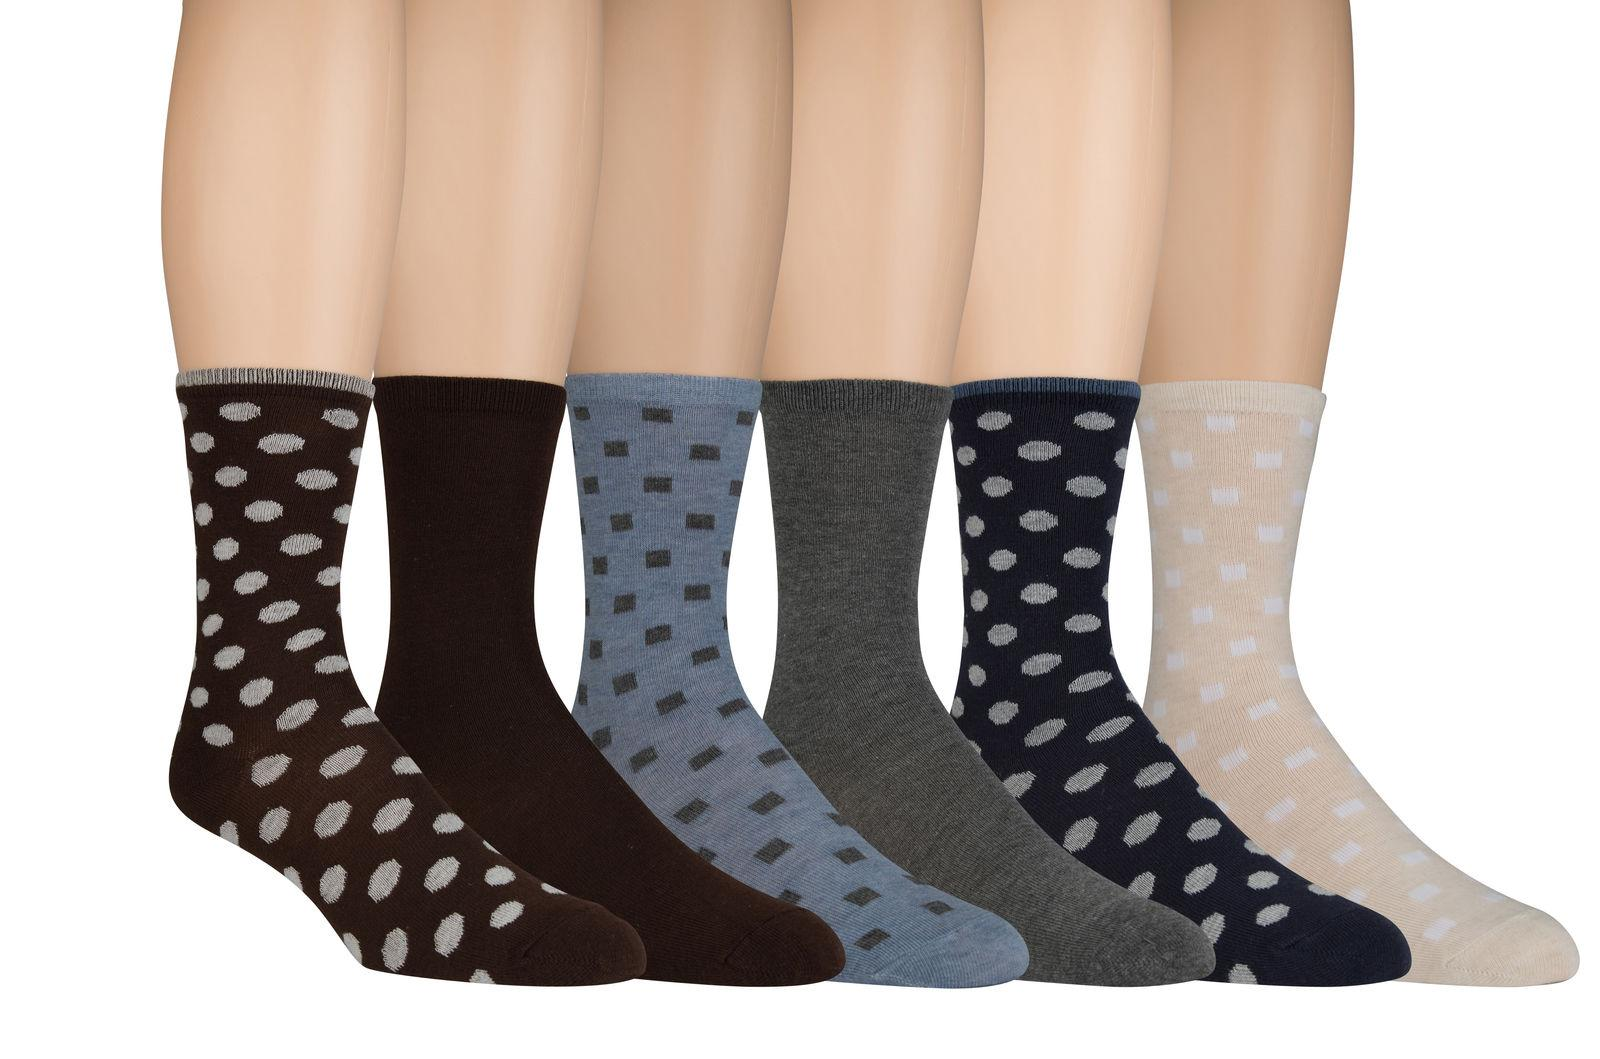 Sonoma Women's Dress Crew Socks Solid & Patterned 6 Pairs Sh